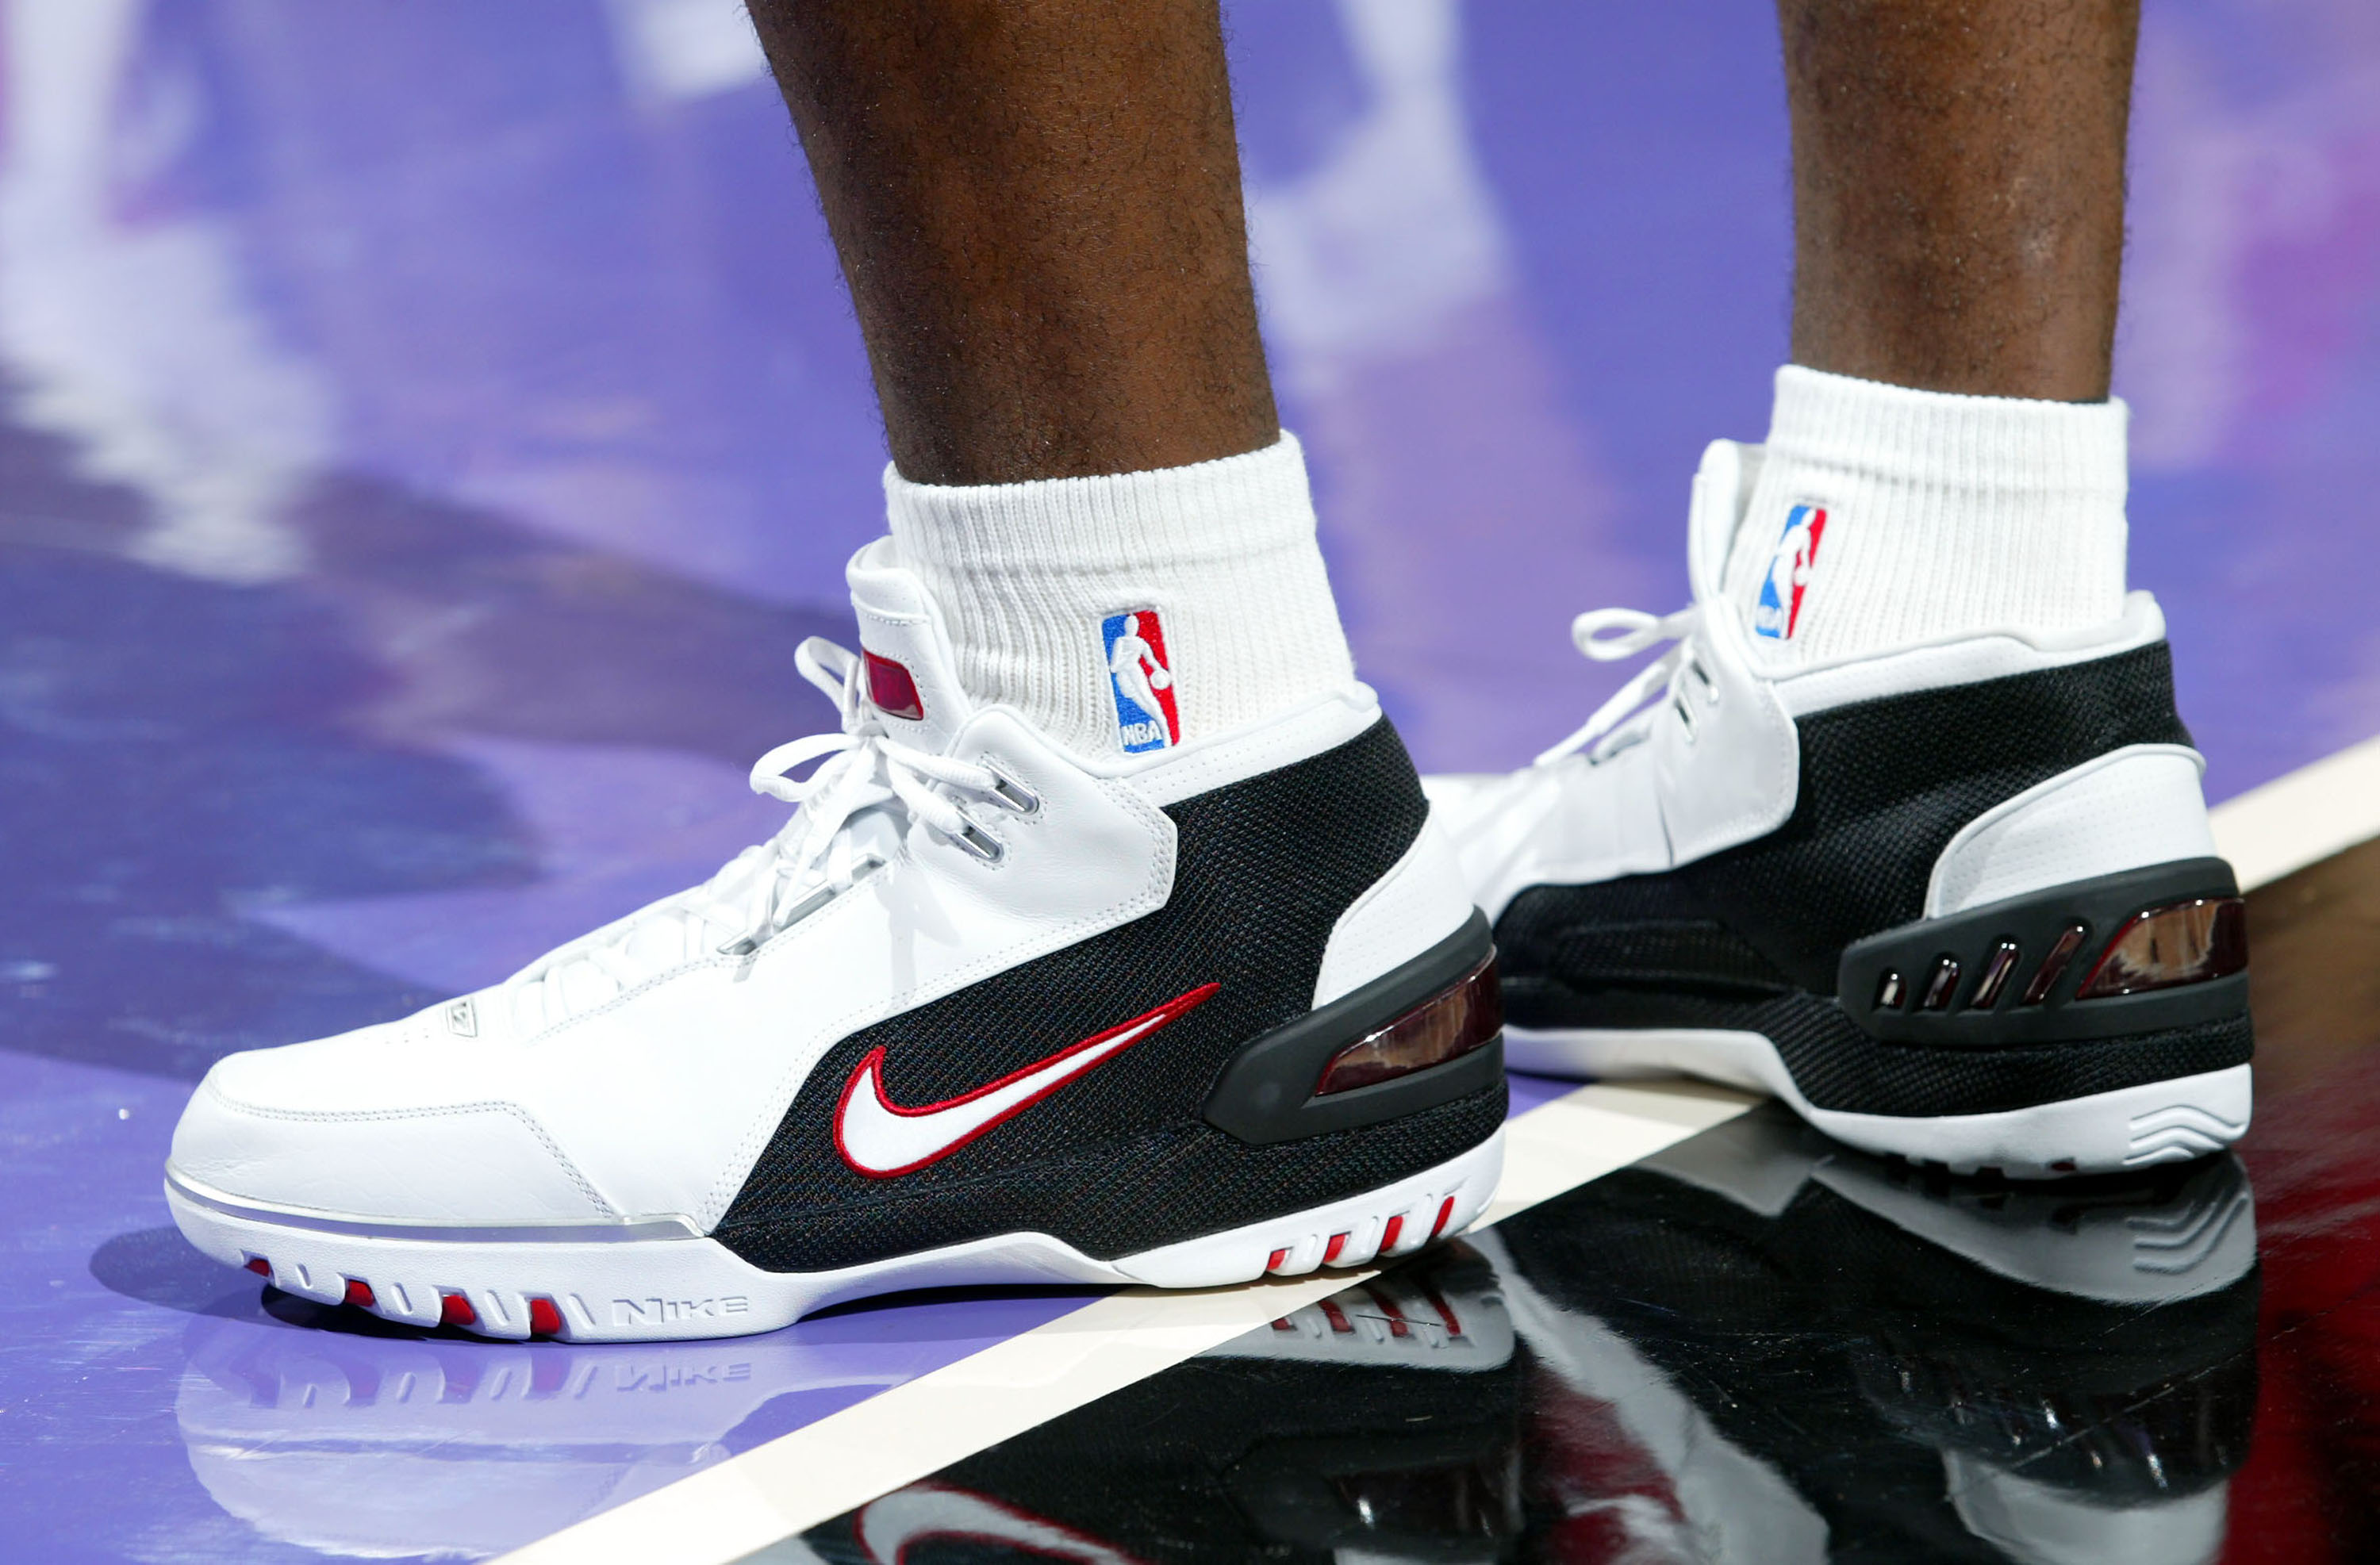 Nike to sell LeBron James' first shoe